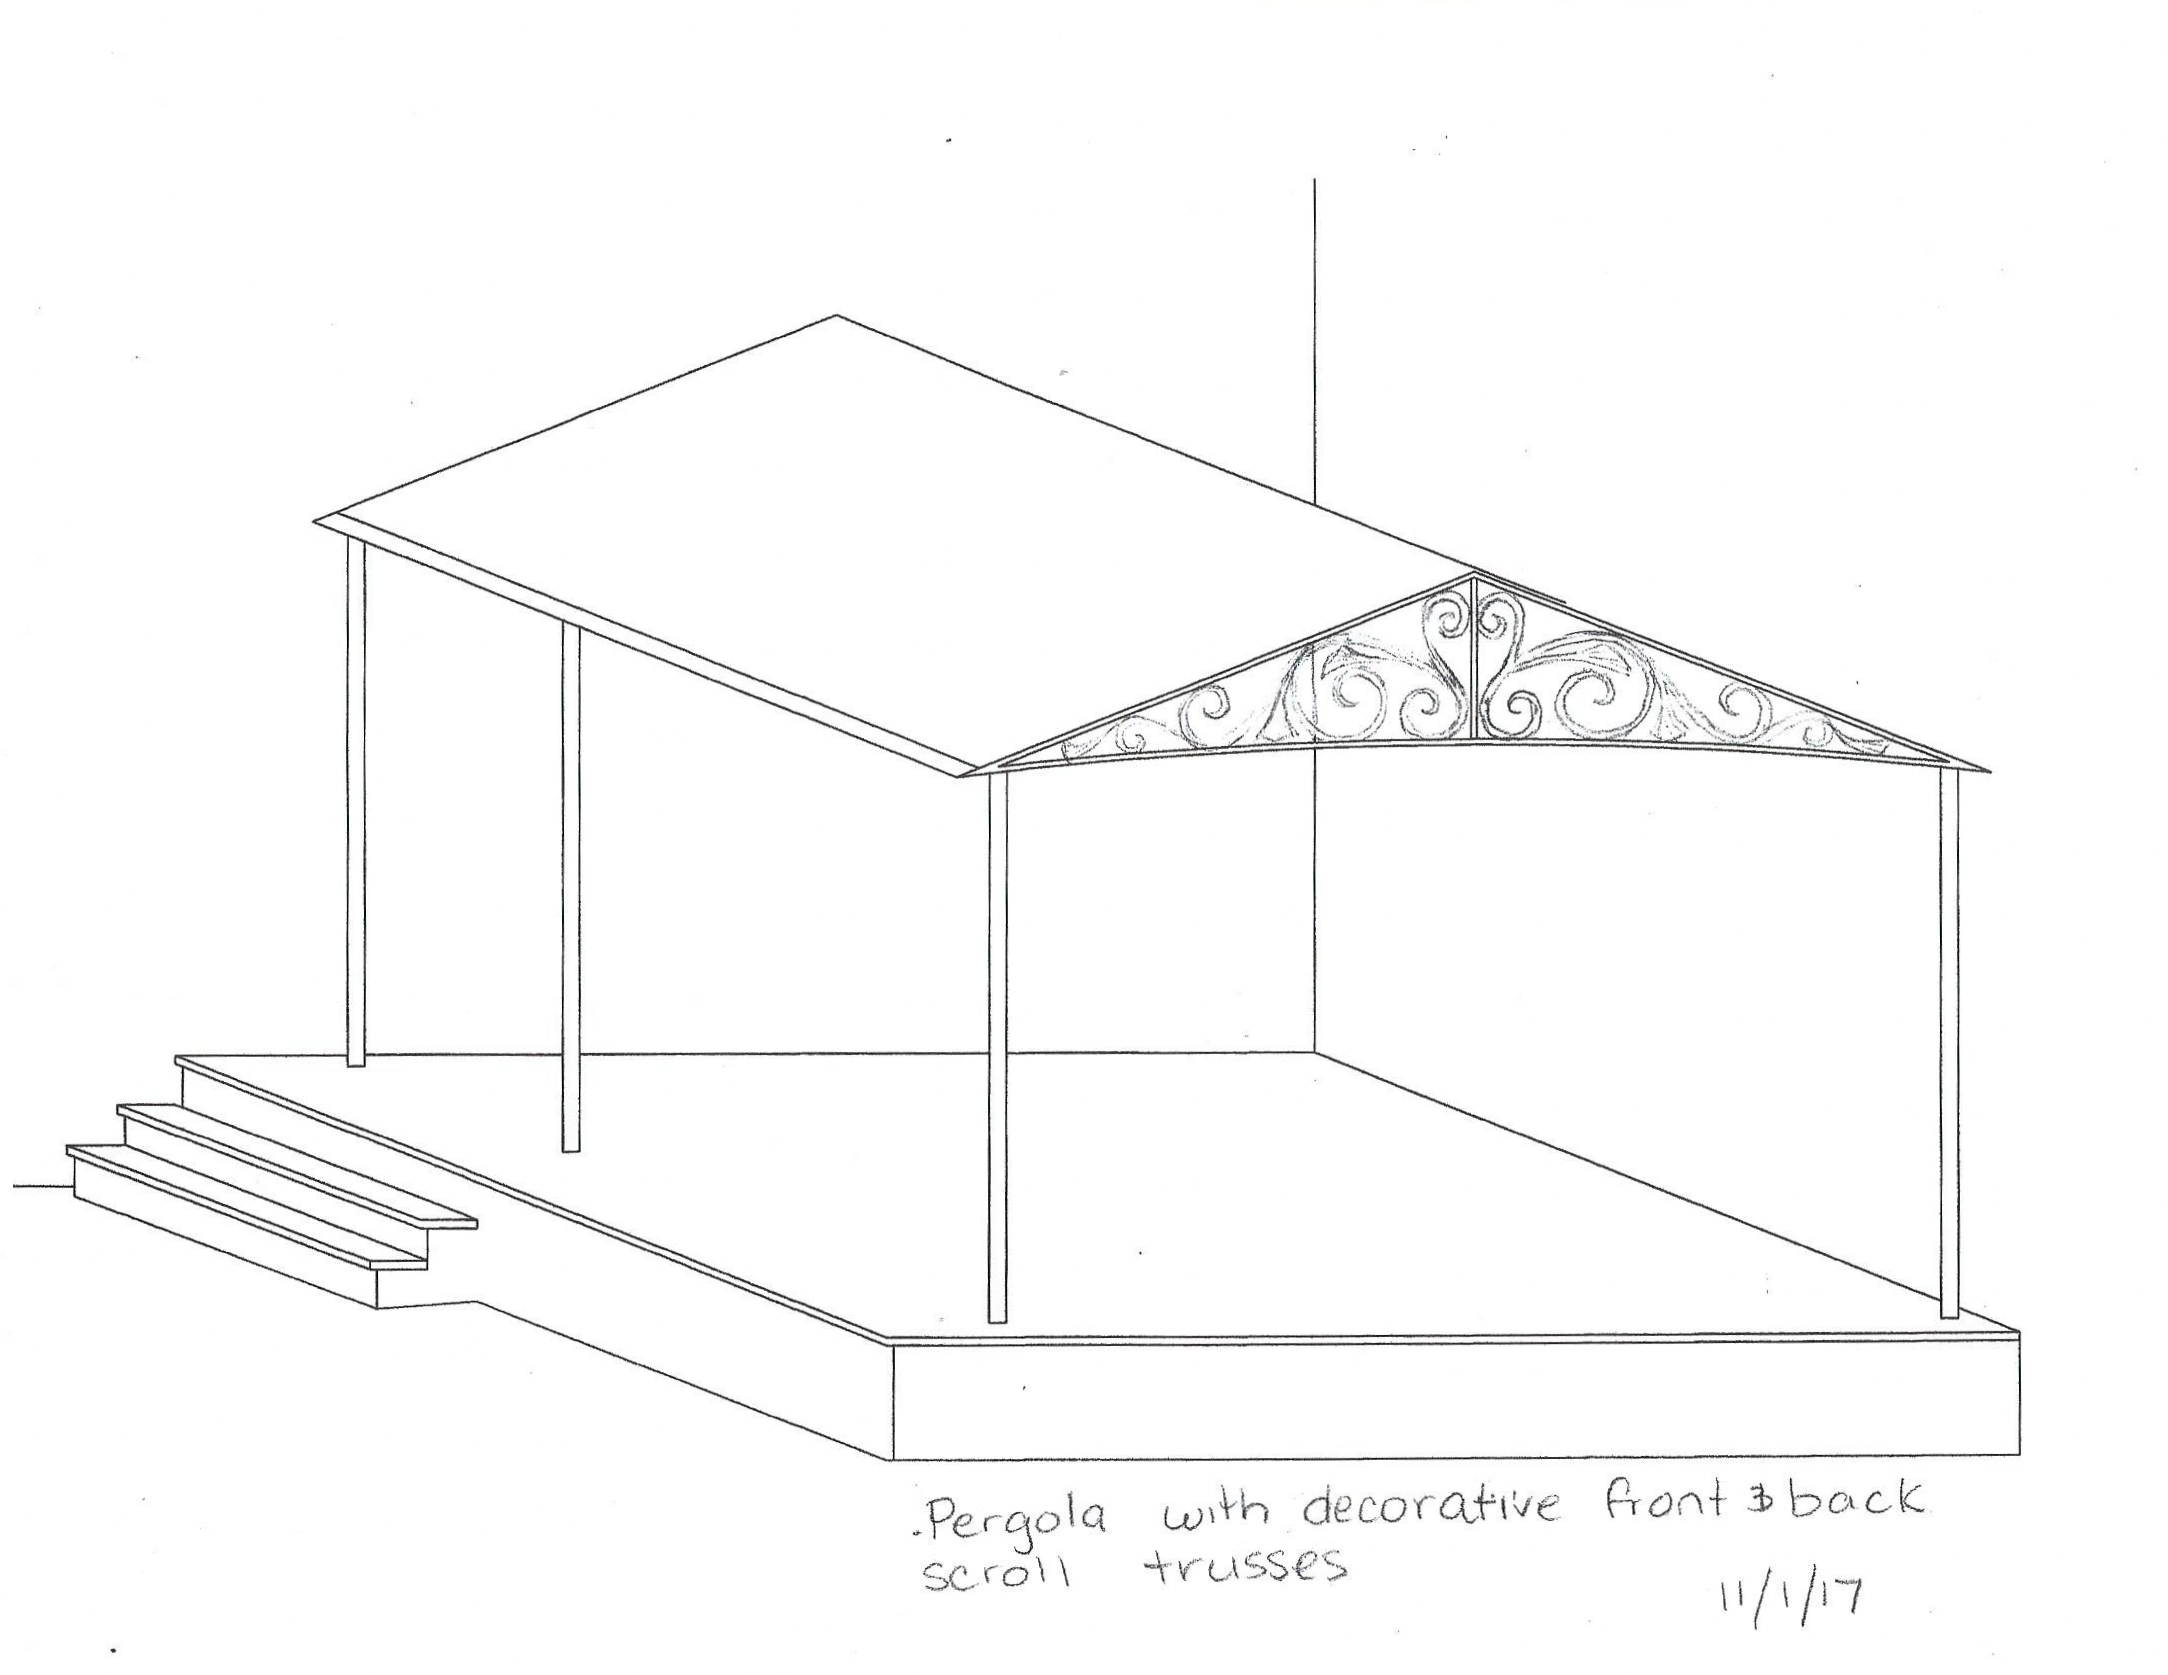 Here is an initial sketch of the proposed  pergola.  This design sketch was presented to our prospective clients for their approval.   It is typical for a designer to create multiple sketch options for presentation.  Design revisions are  also common during this phase.